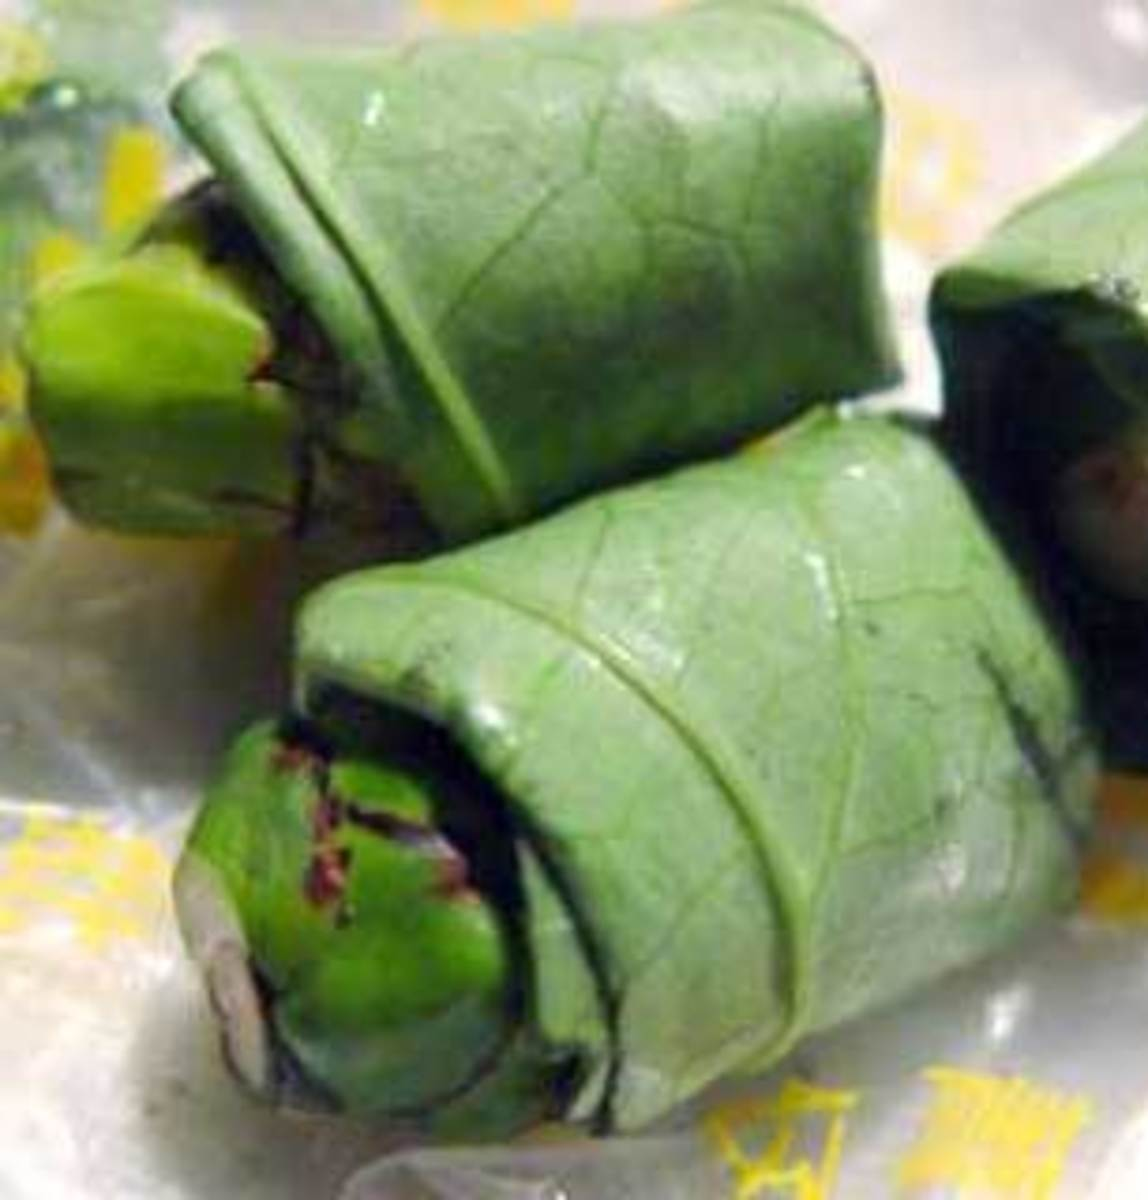 Prepared Betel nut in a Chinese market. Dried Areca palm fruit is wrapped in betel leaf.